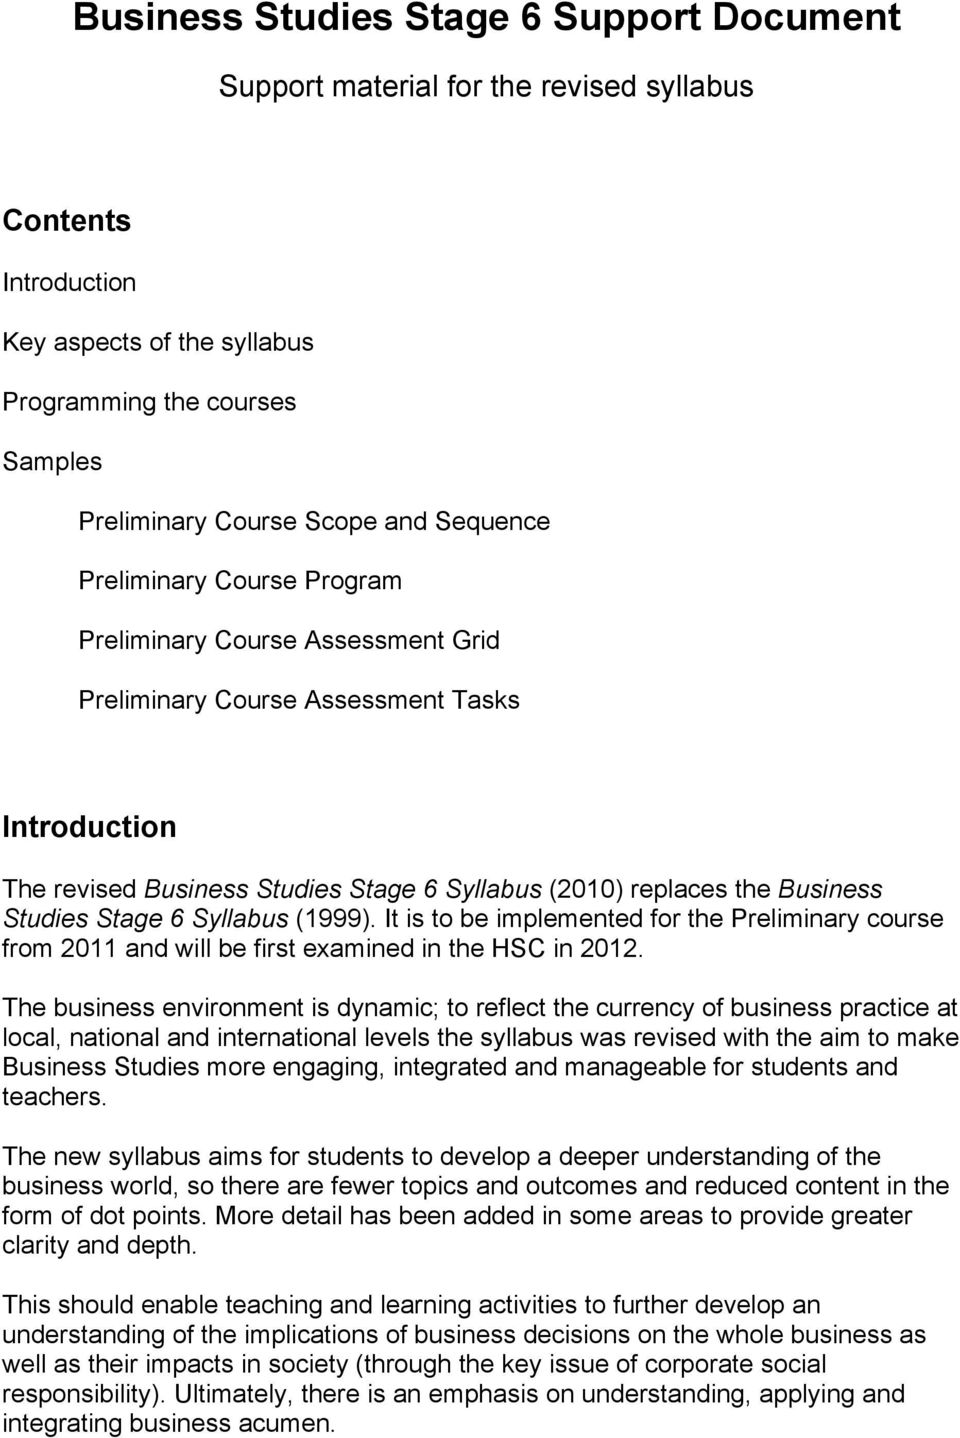 Business Studies Stage 6 Support Document - PDF